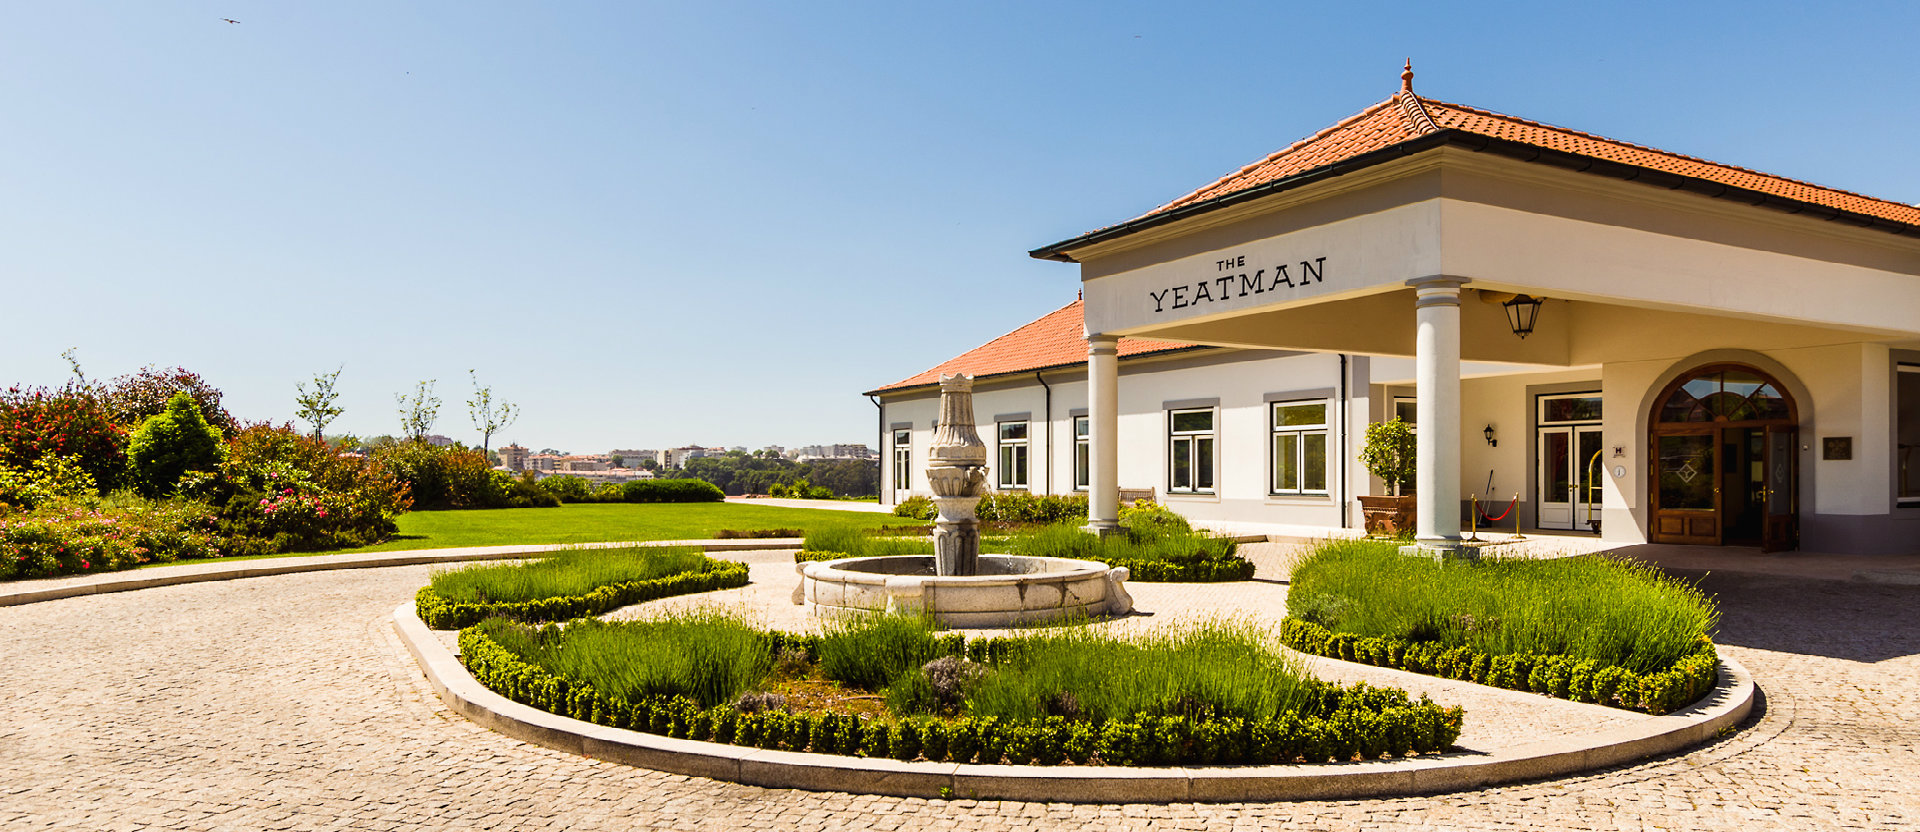 What to do in Porto: The Yeatman Hotel what to do in porto What to do in Porto: 48 hours in the Undefeated city yeatman1